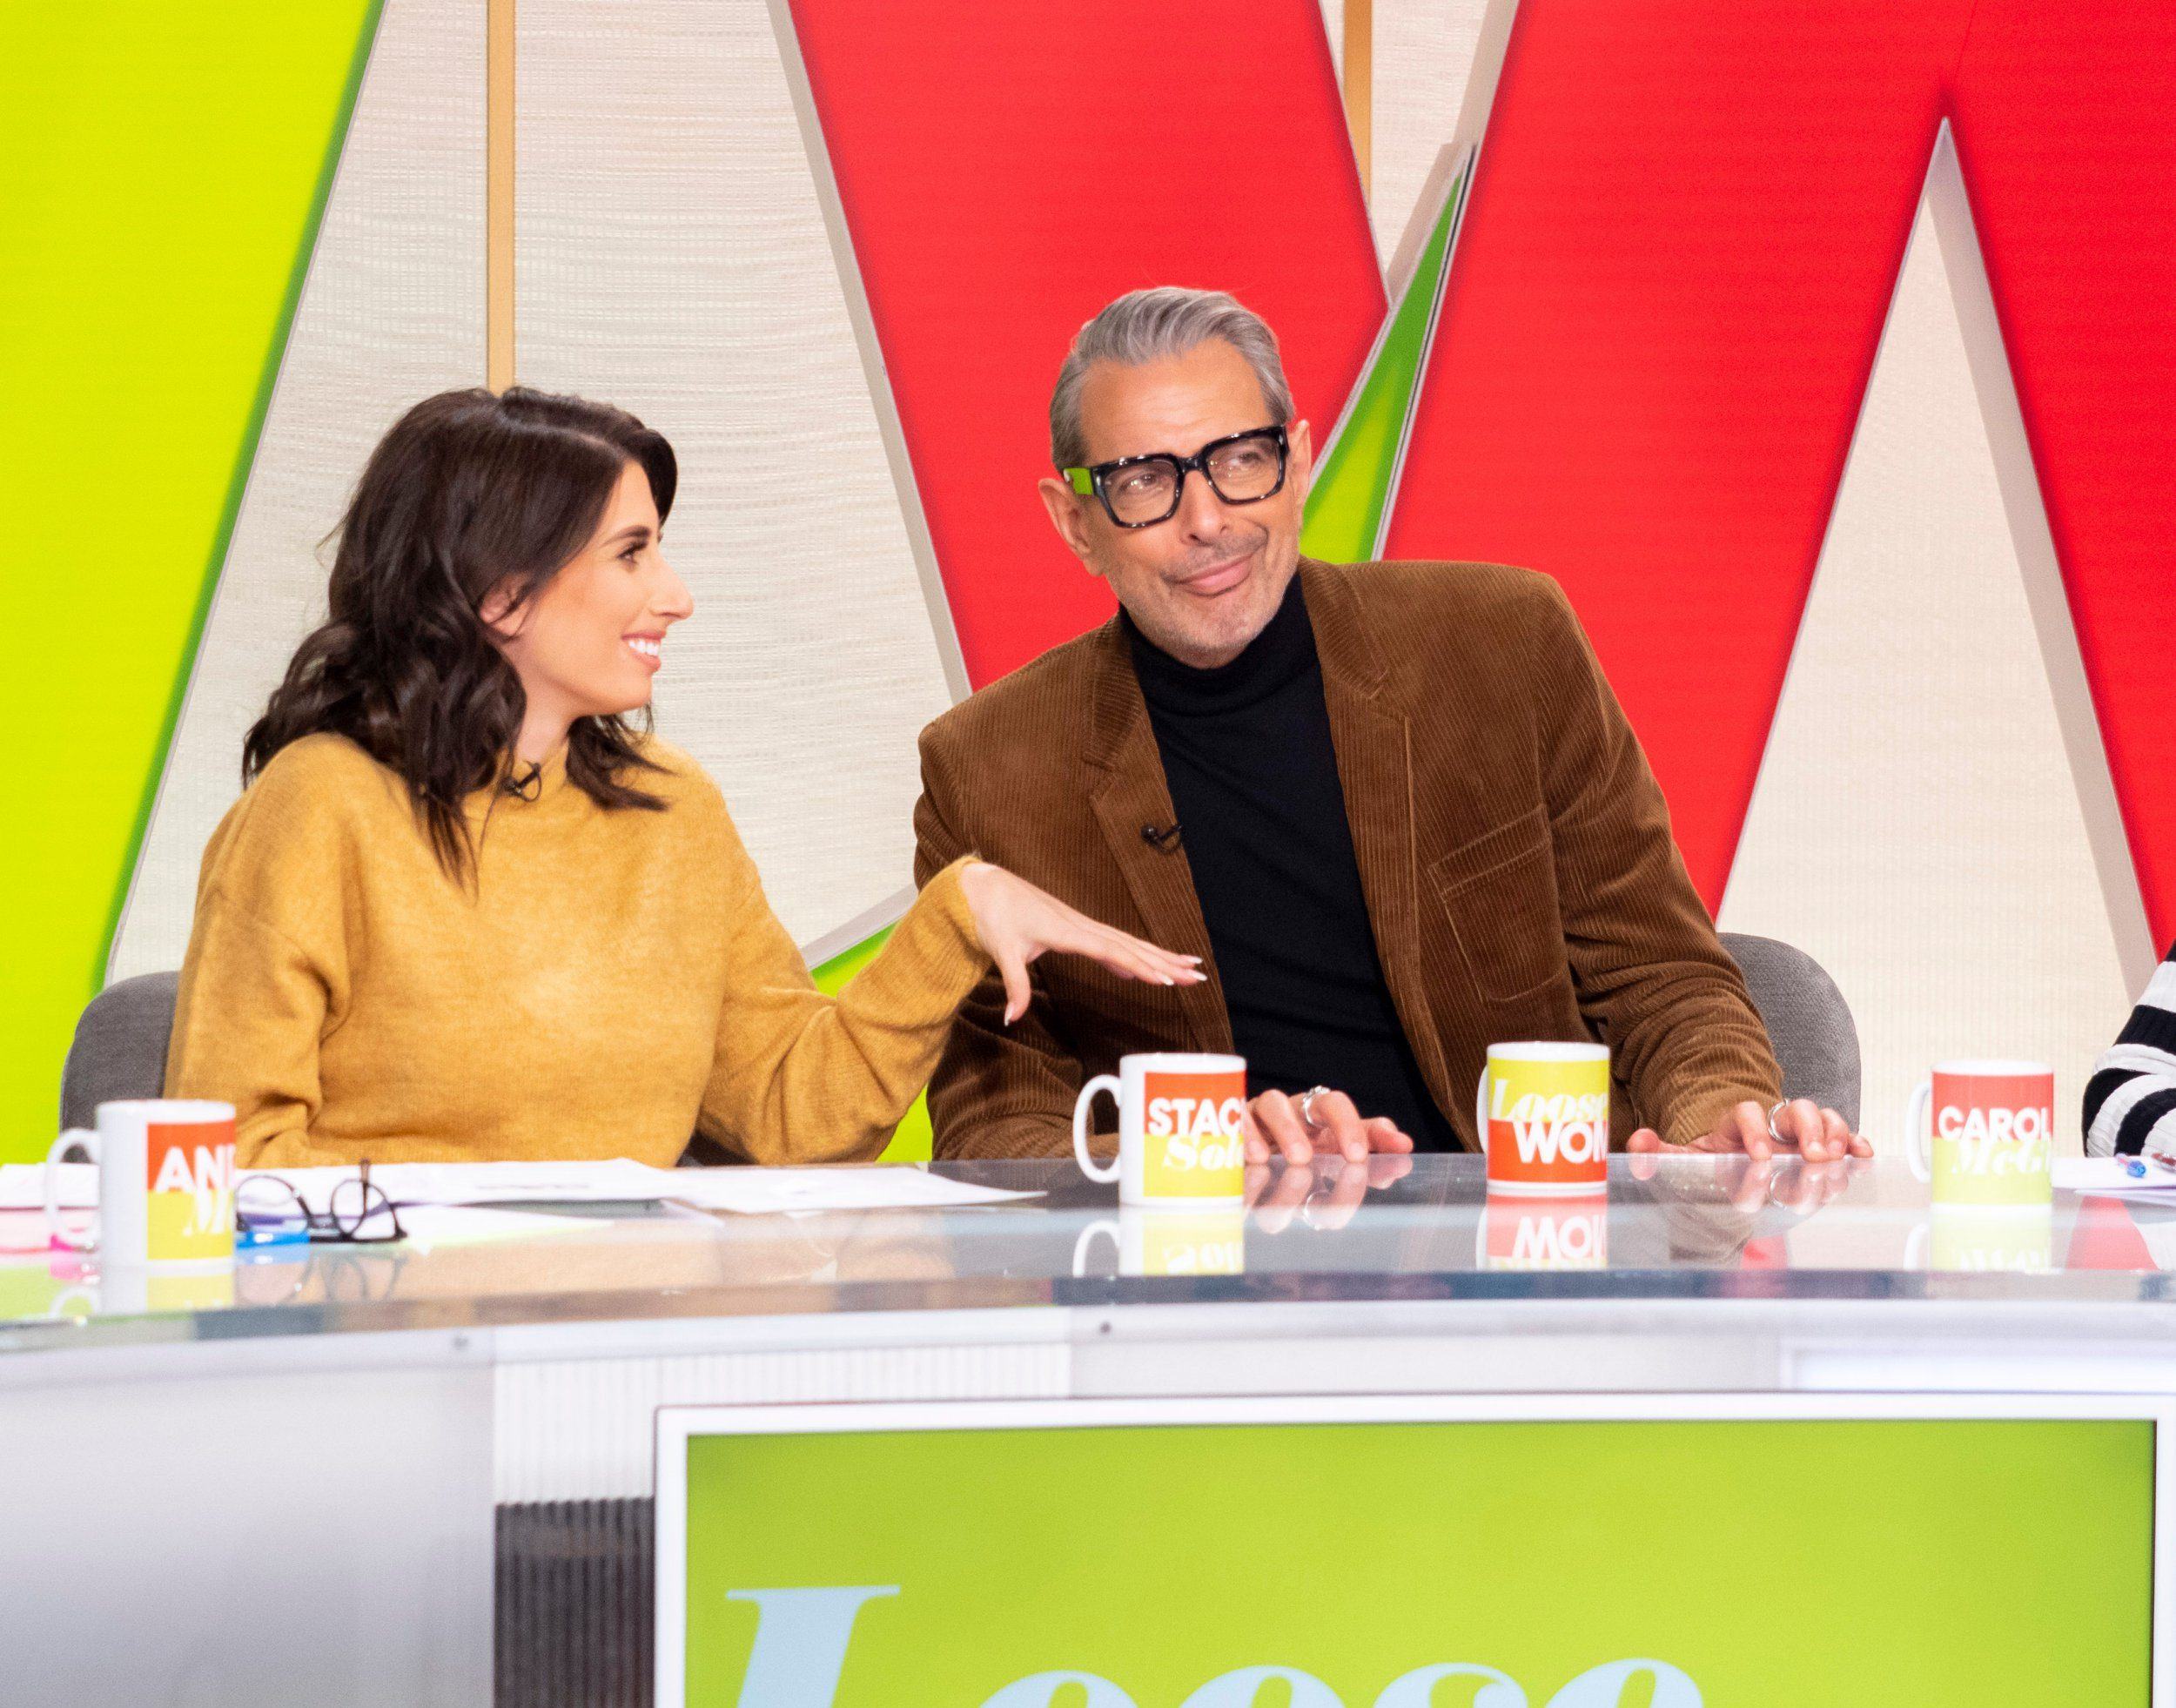 Editorial use only Mandatory Credit: Photo by Ken McKay/ITV/REX (9990828aw) Stacey Solomon, Jeff Goldblum 'Loose Women' TV show, London, UK - 23 Nov 2018 CELEBRITY GUEST: JEFF GOLDBLUM He is a Hollywood icon who has been on our screens for over forty years in films such as Jurassic Park, Independence Day and The Fly. But now acting supremo Jeff Goldblum has turned his attention to his love of music and has released his first album, a jazz album, ?The Capitol Studios Session?. Jeff joins us to tell us all about his album, his stellar acting career, and becoming a dad for the first time in his 60s!